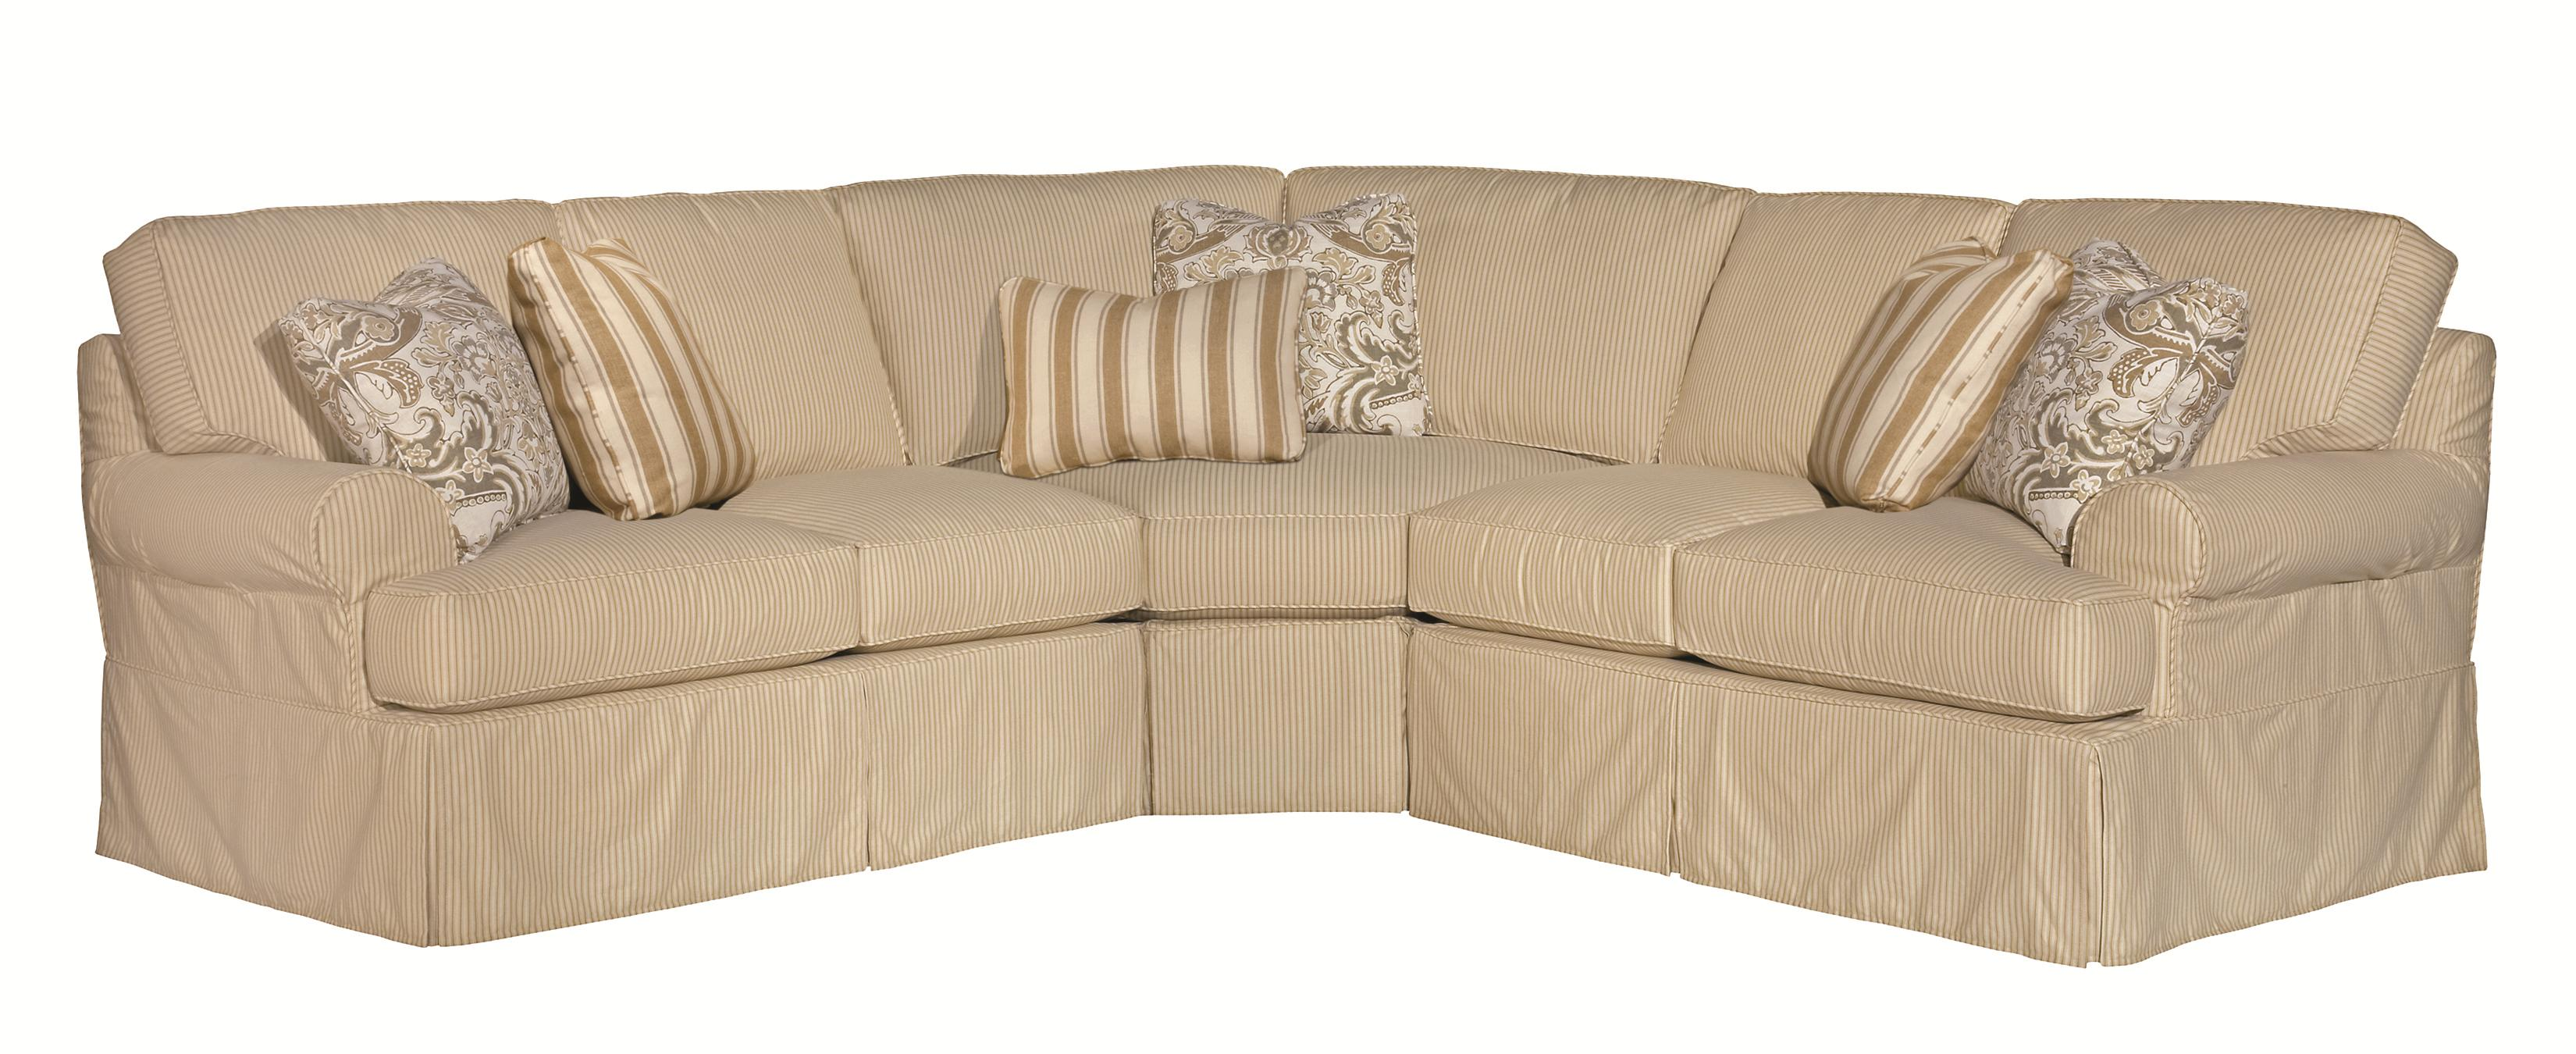 Exceptionnel 5 Pc Sectional Sofa